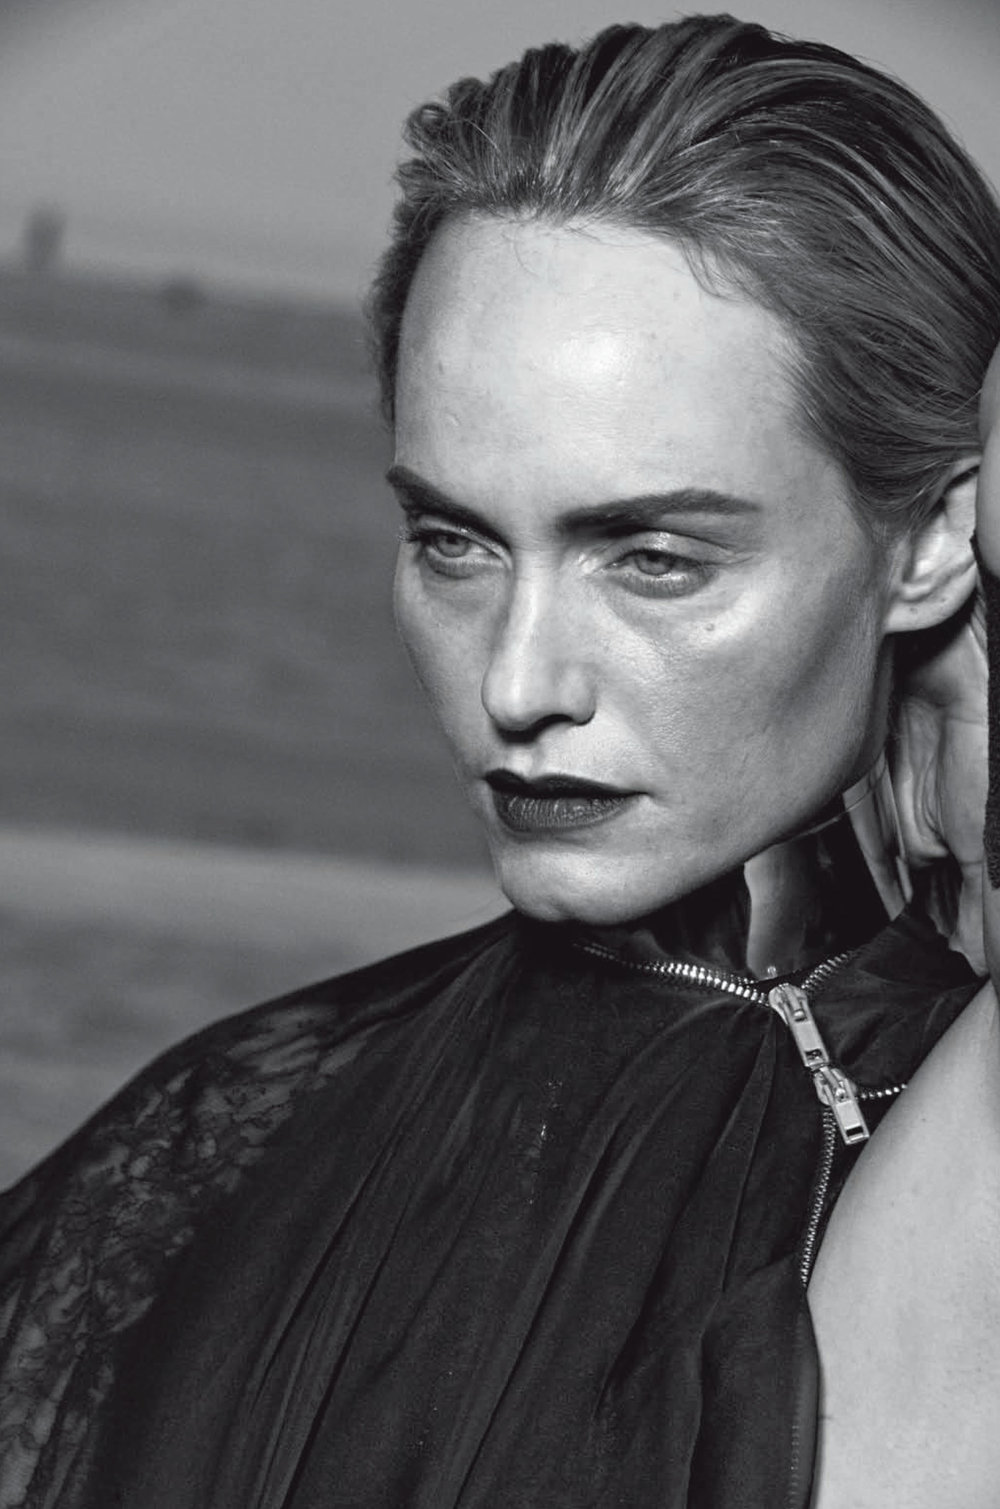 AmberValletta-VogueItalia-Feb13-PeterLindbergh_12.jpg